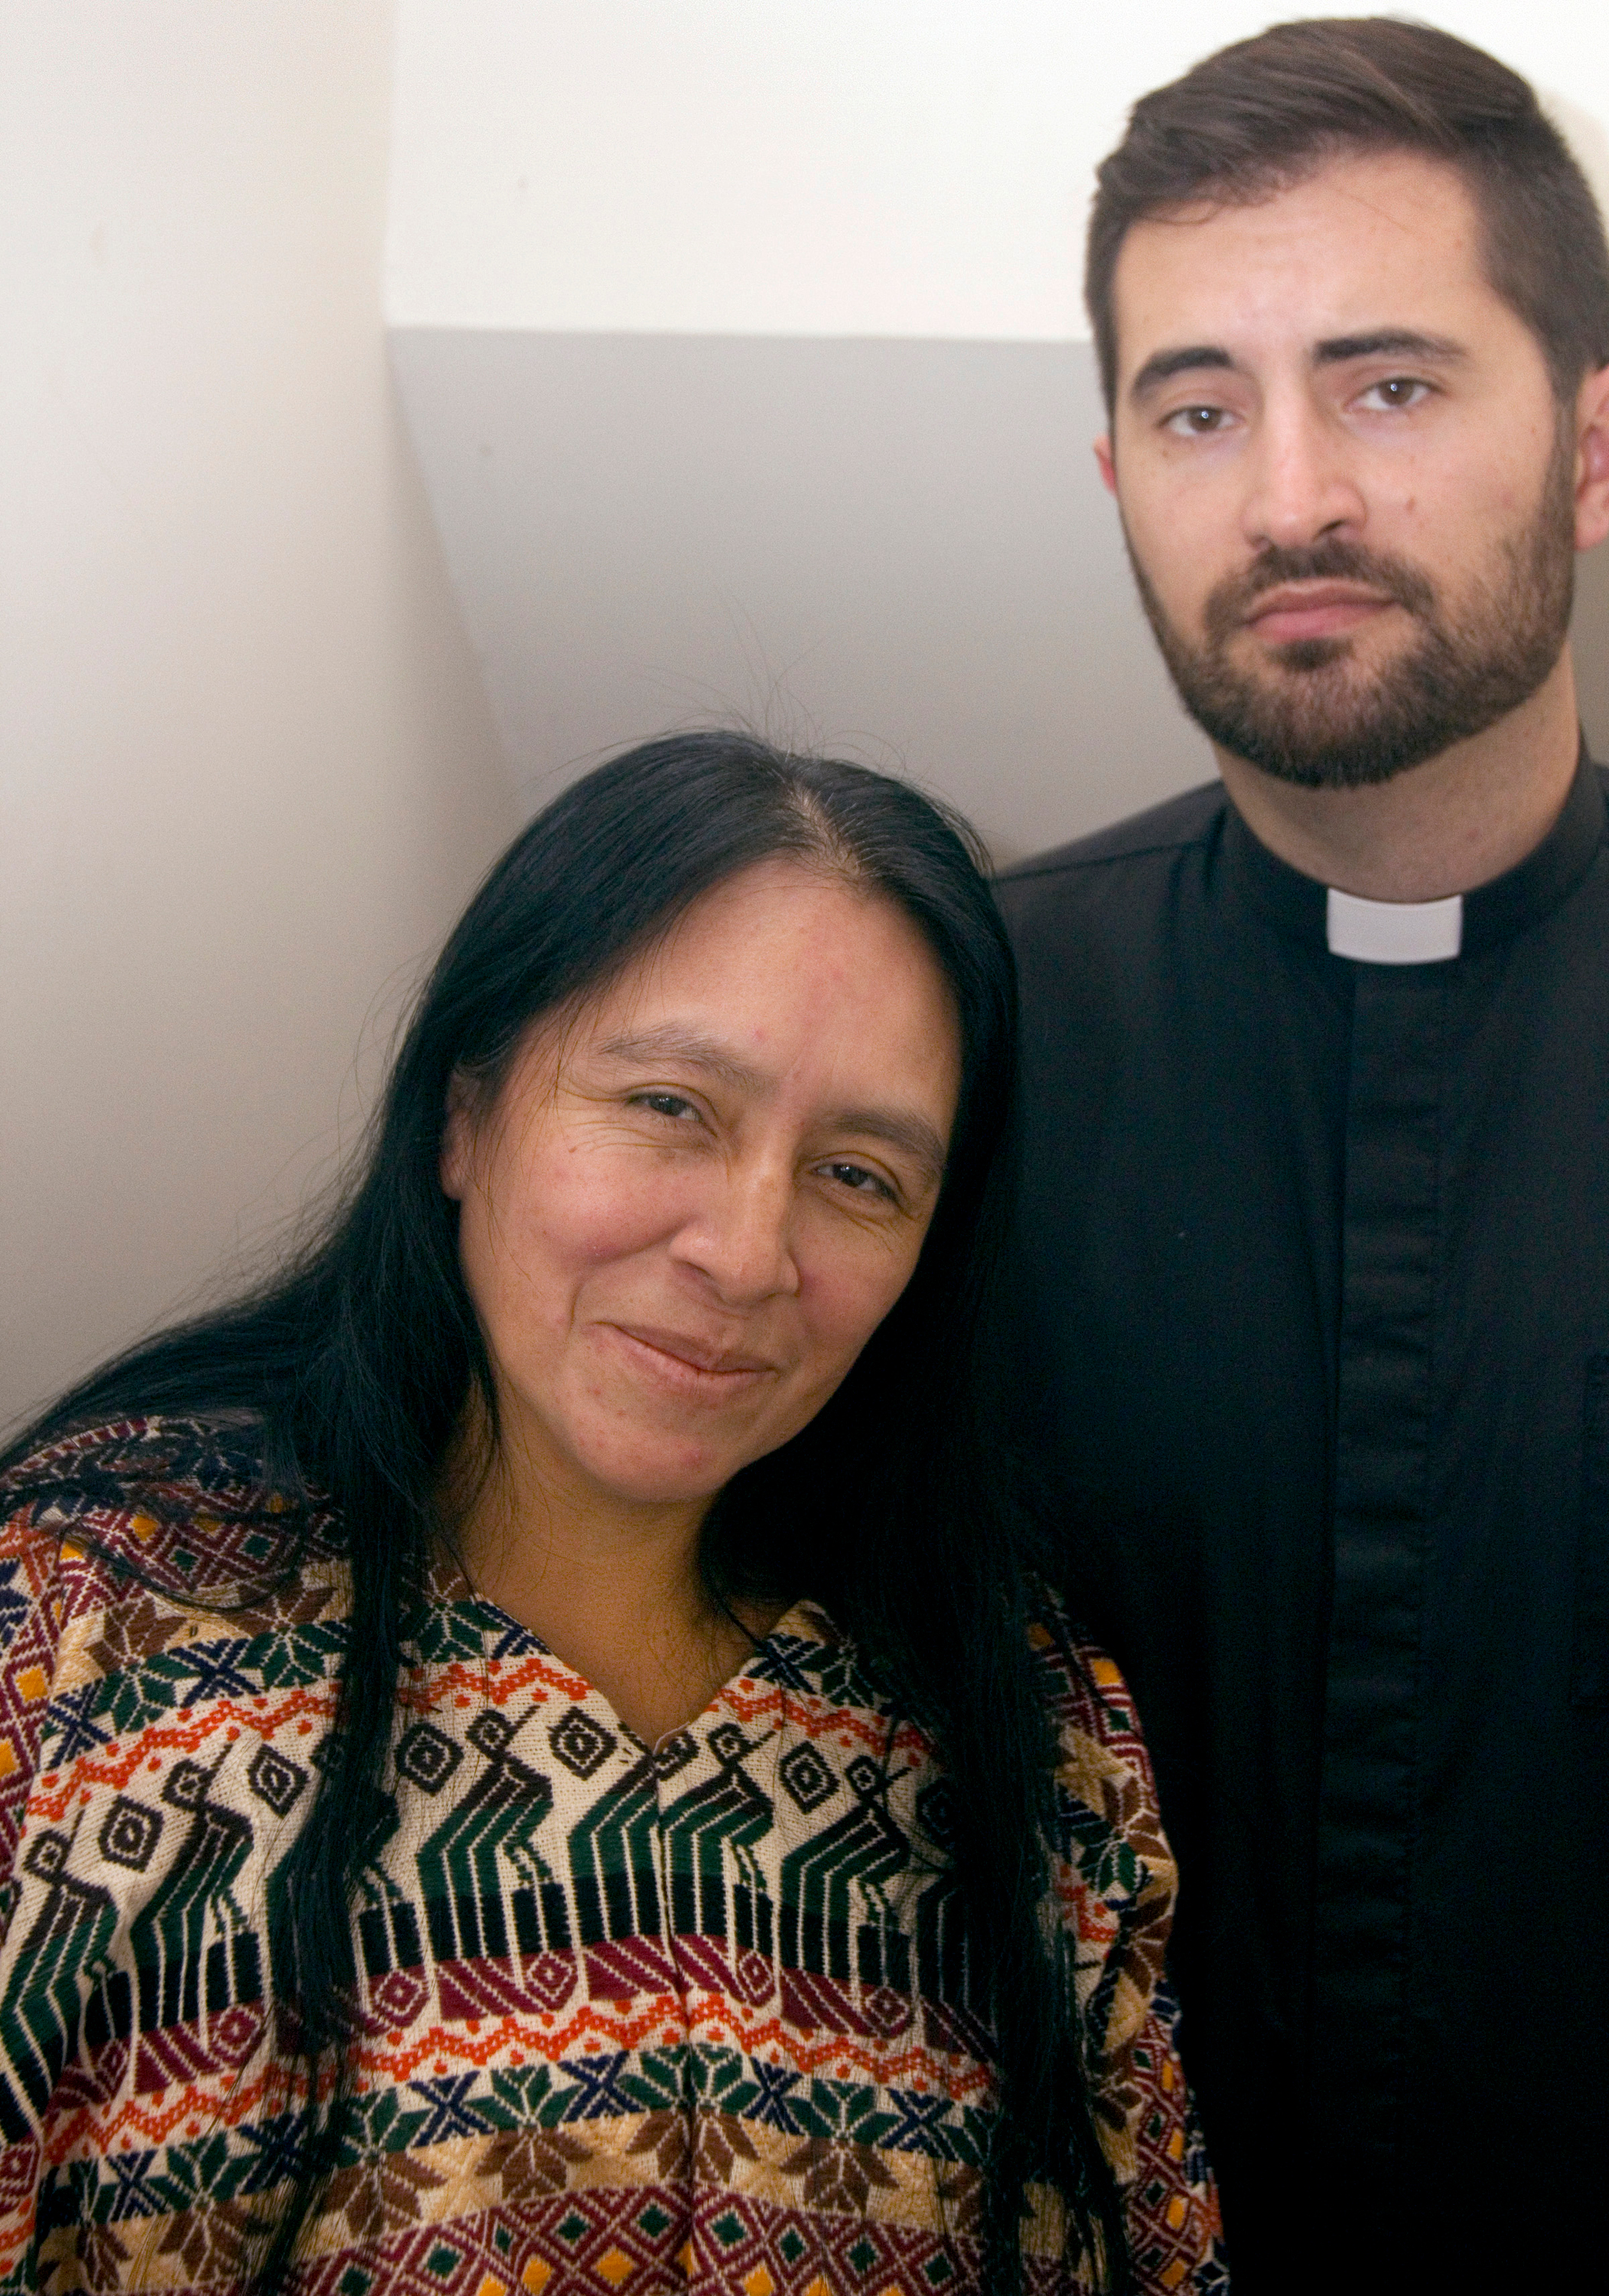 Maria Chavalan Sut stands with the Rev. Isaac Collins, pastor of Wesley Memorial United Methodist Church, at a press conference held Oct. 8. Chavalan Sut is living in the church to avoid deportation. Photo by Richard Lord, UMNS.